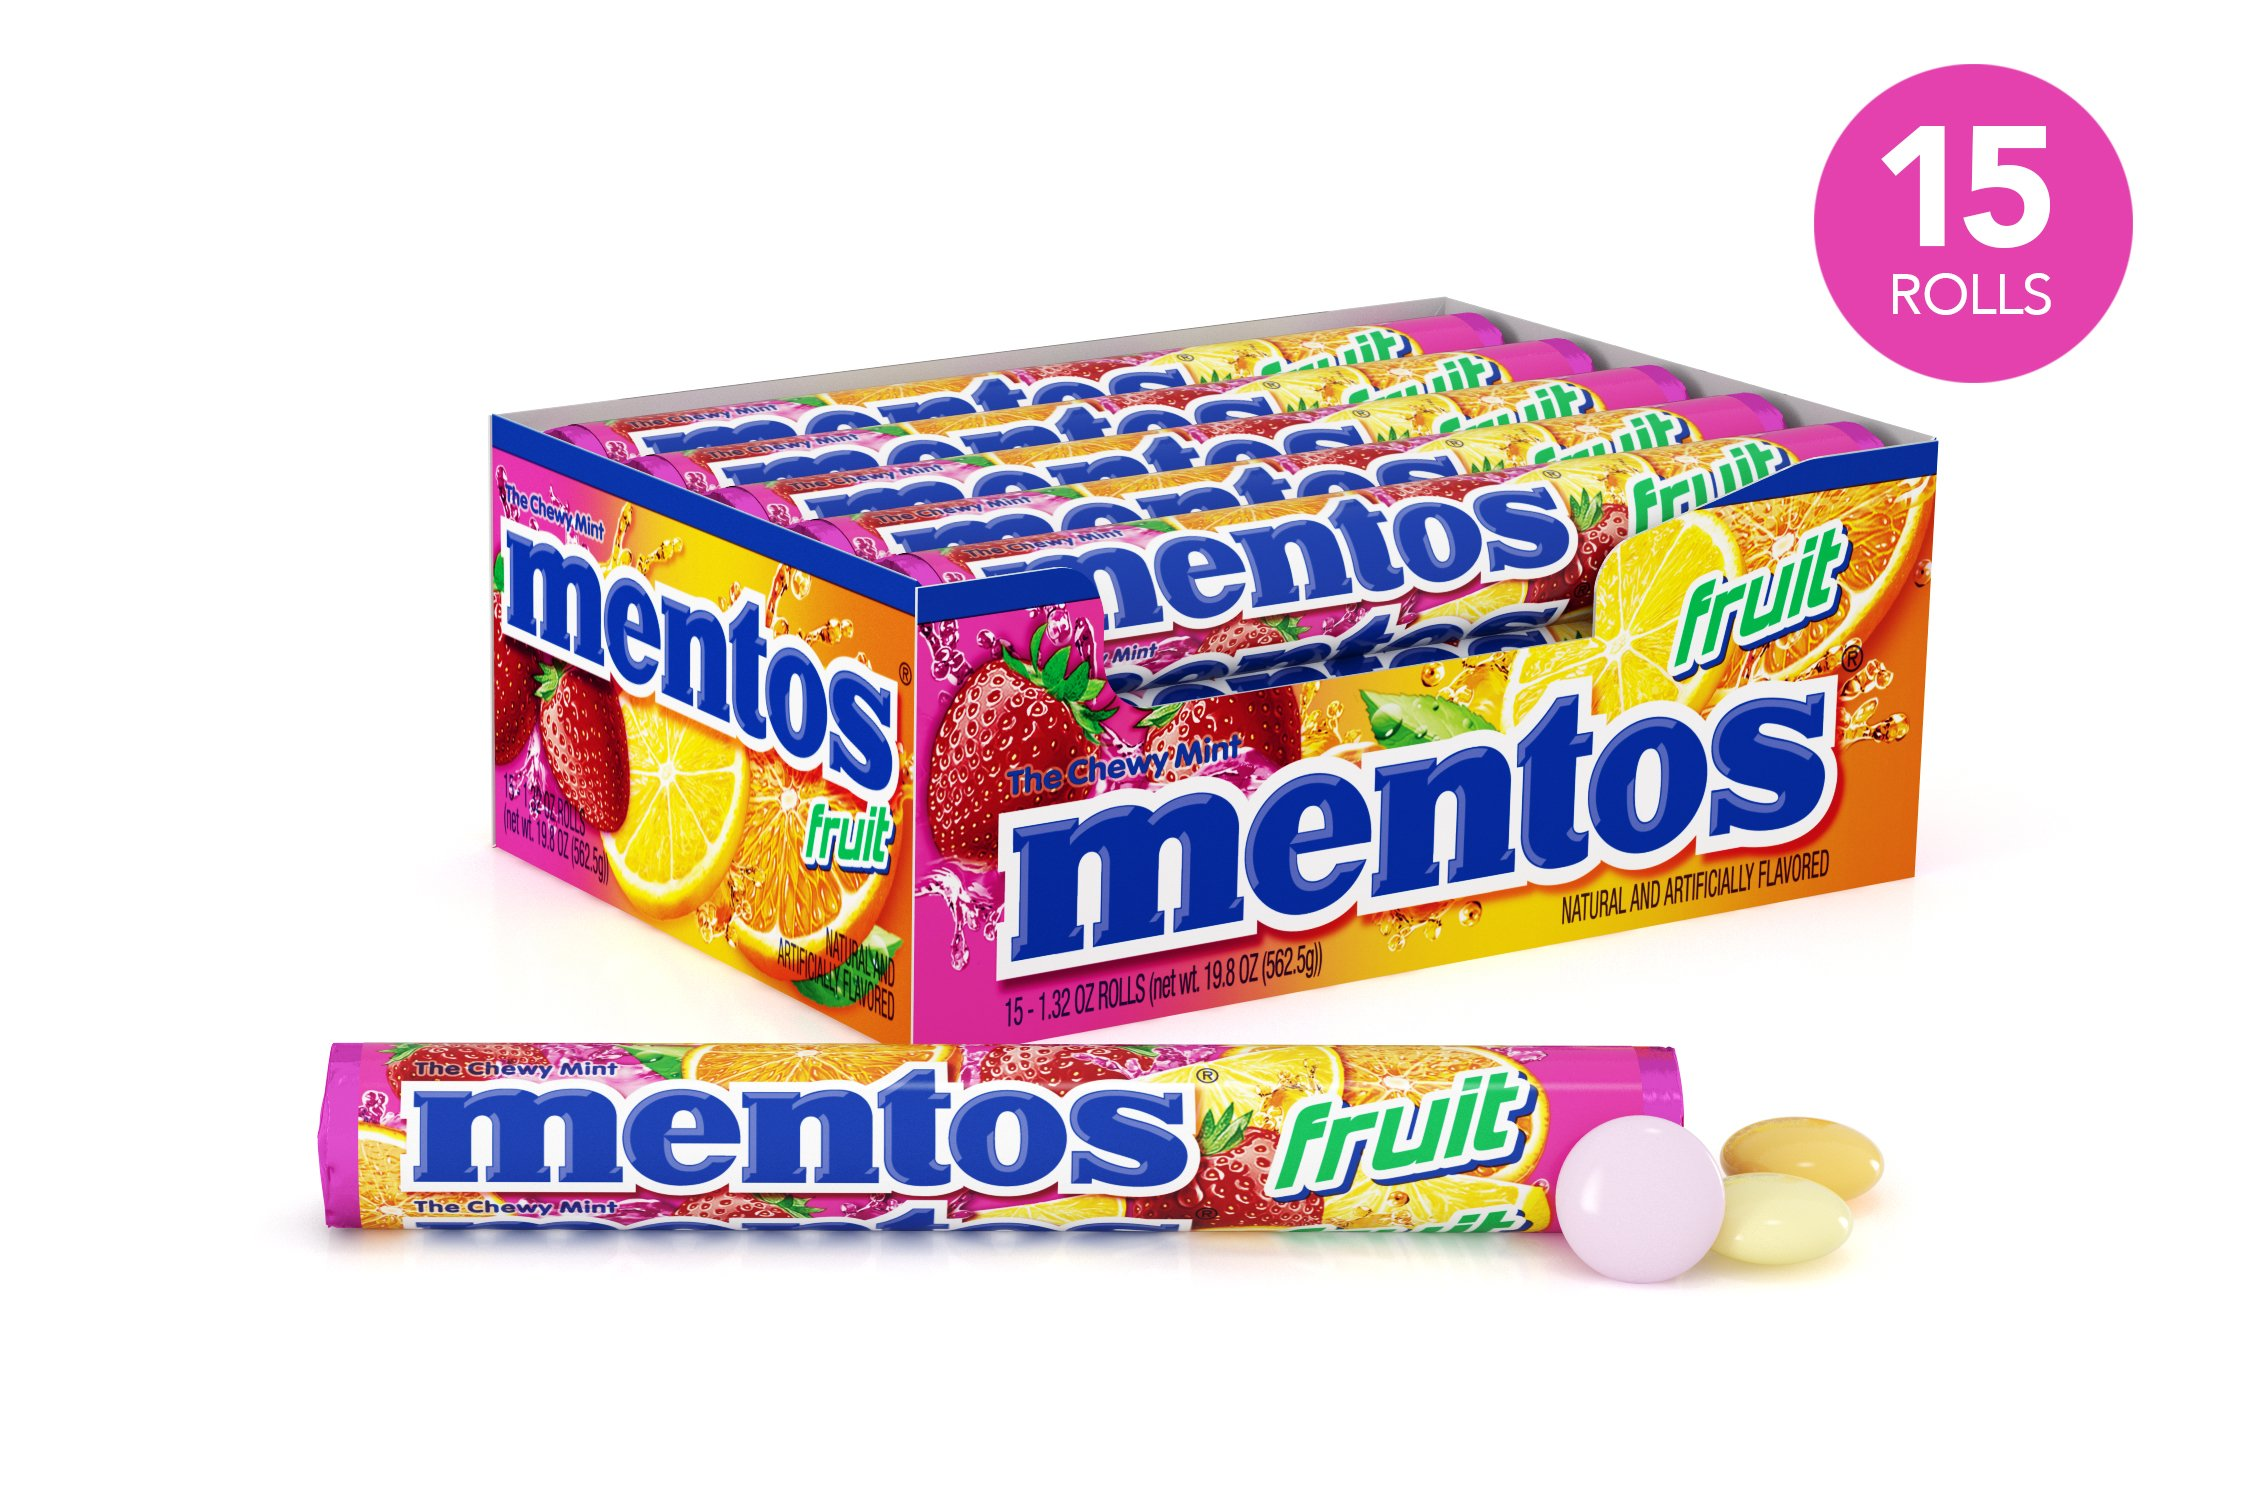 Mentos Chewy Mint Candy Roll, Fruit, Party, Non Melting, 1.32 ounce/14 Pieces (Pack of 15)